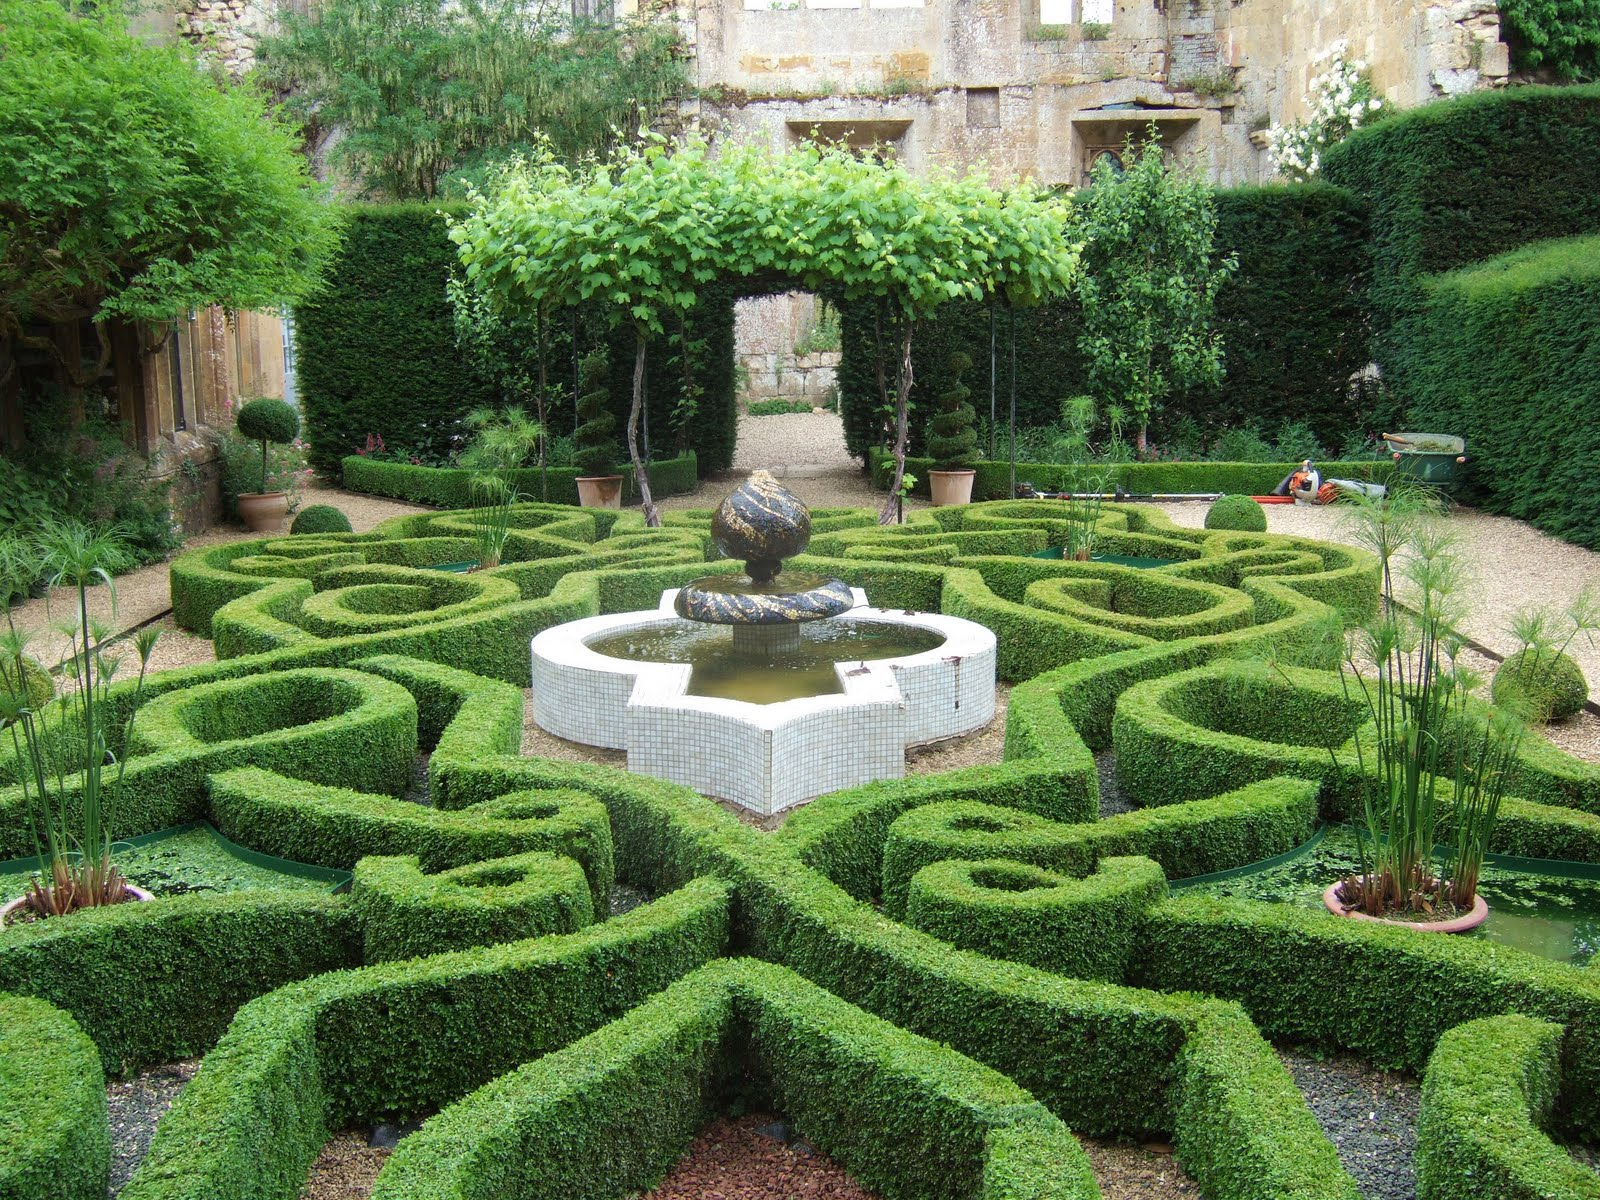 Tudor Knot Garden Designs Of Photos2pleaseu Knot Garden